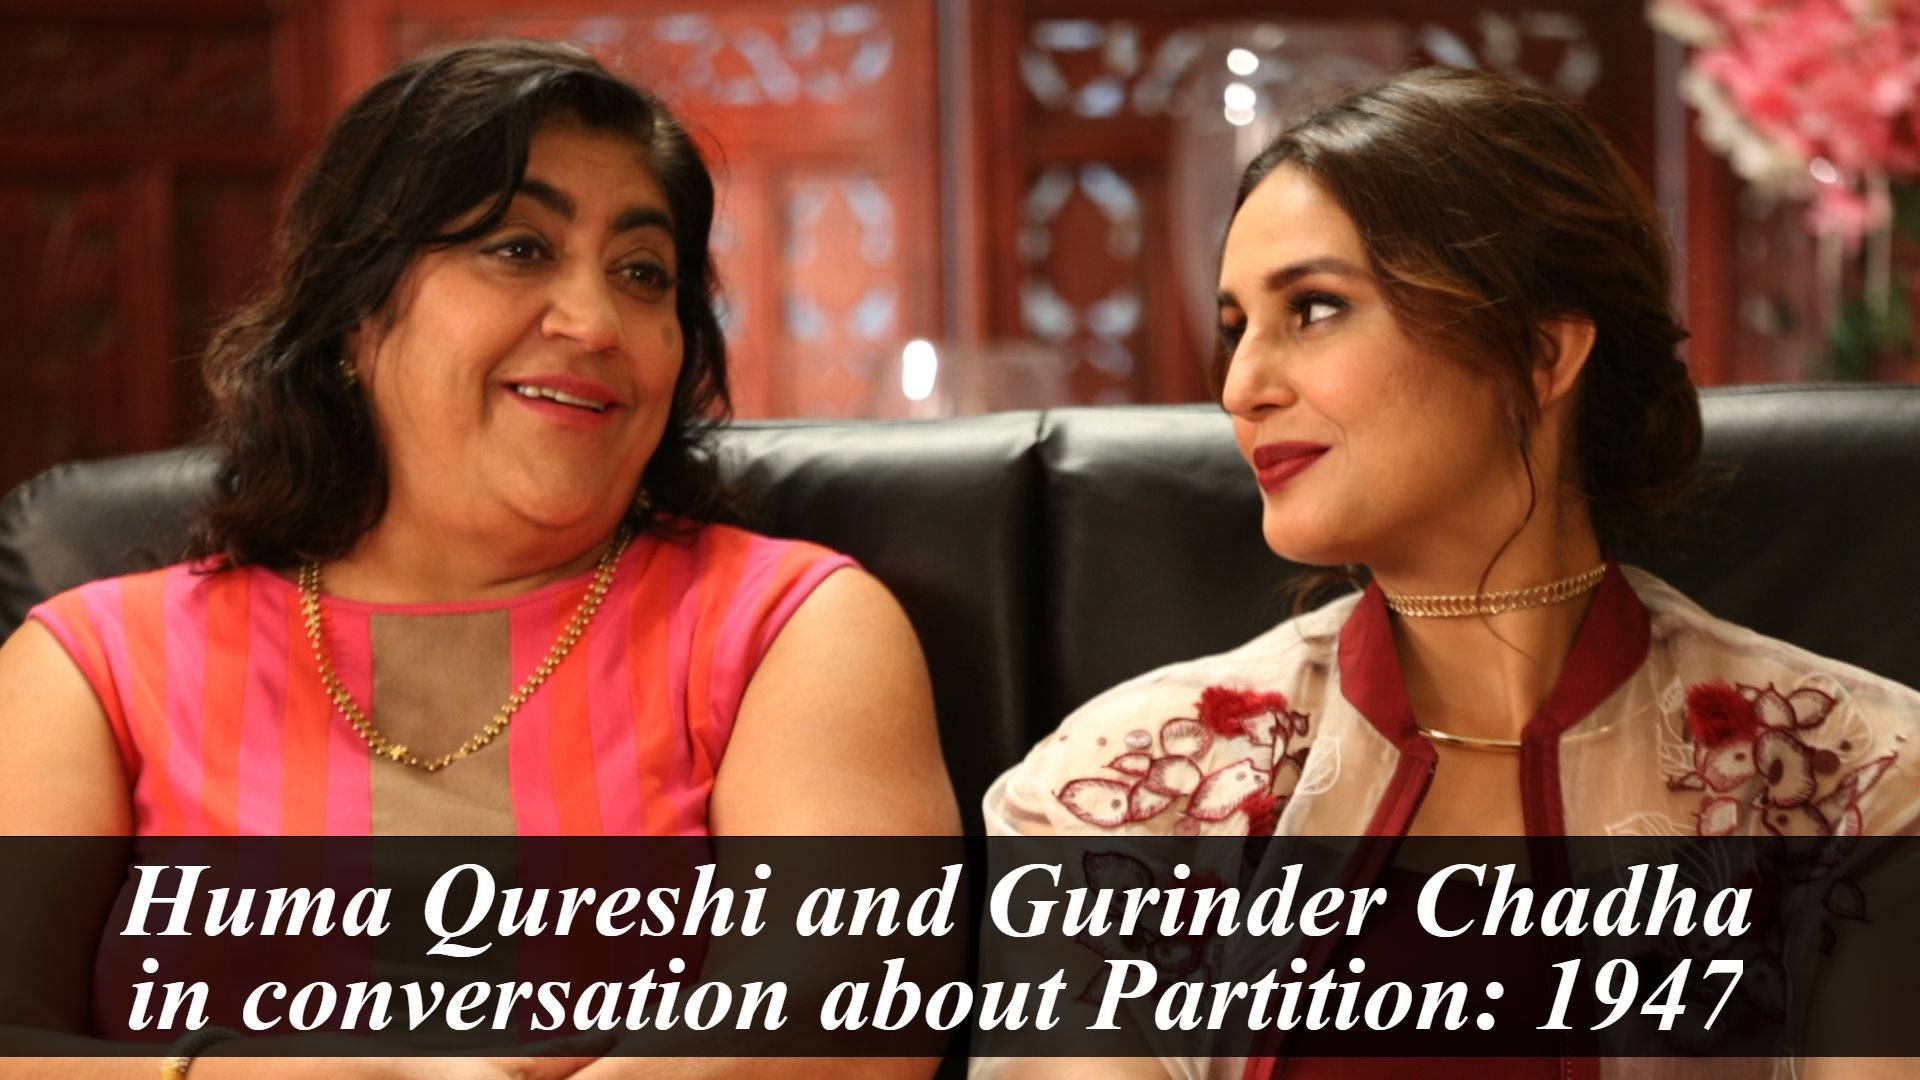 Huma Qureshi and Gurinder Chadha in conversation with Atika A. Farooqui about Partition: 1947